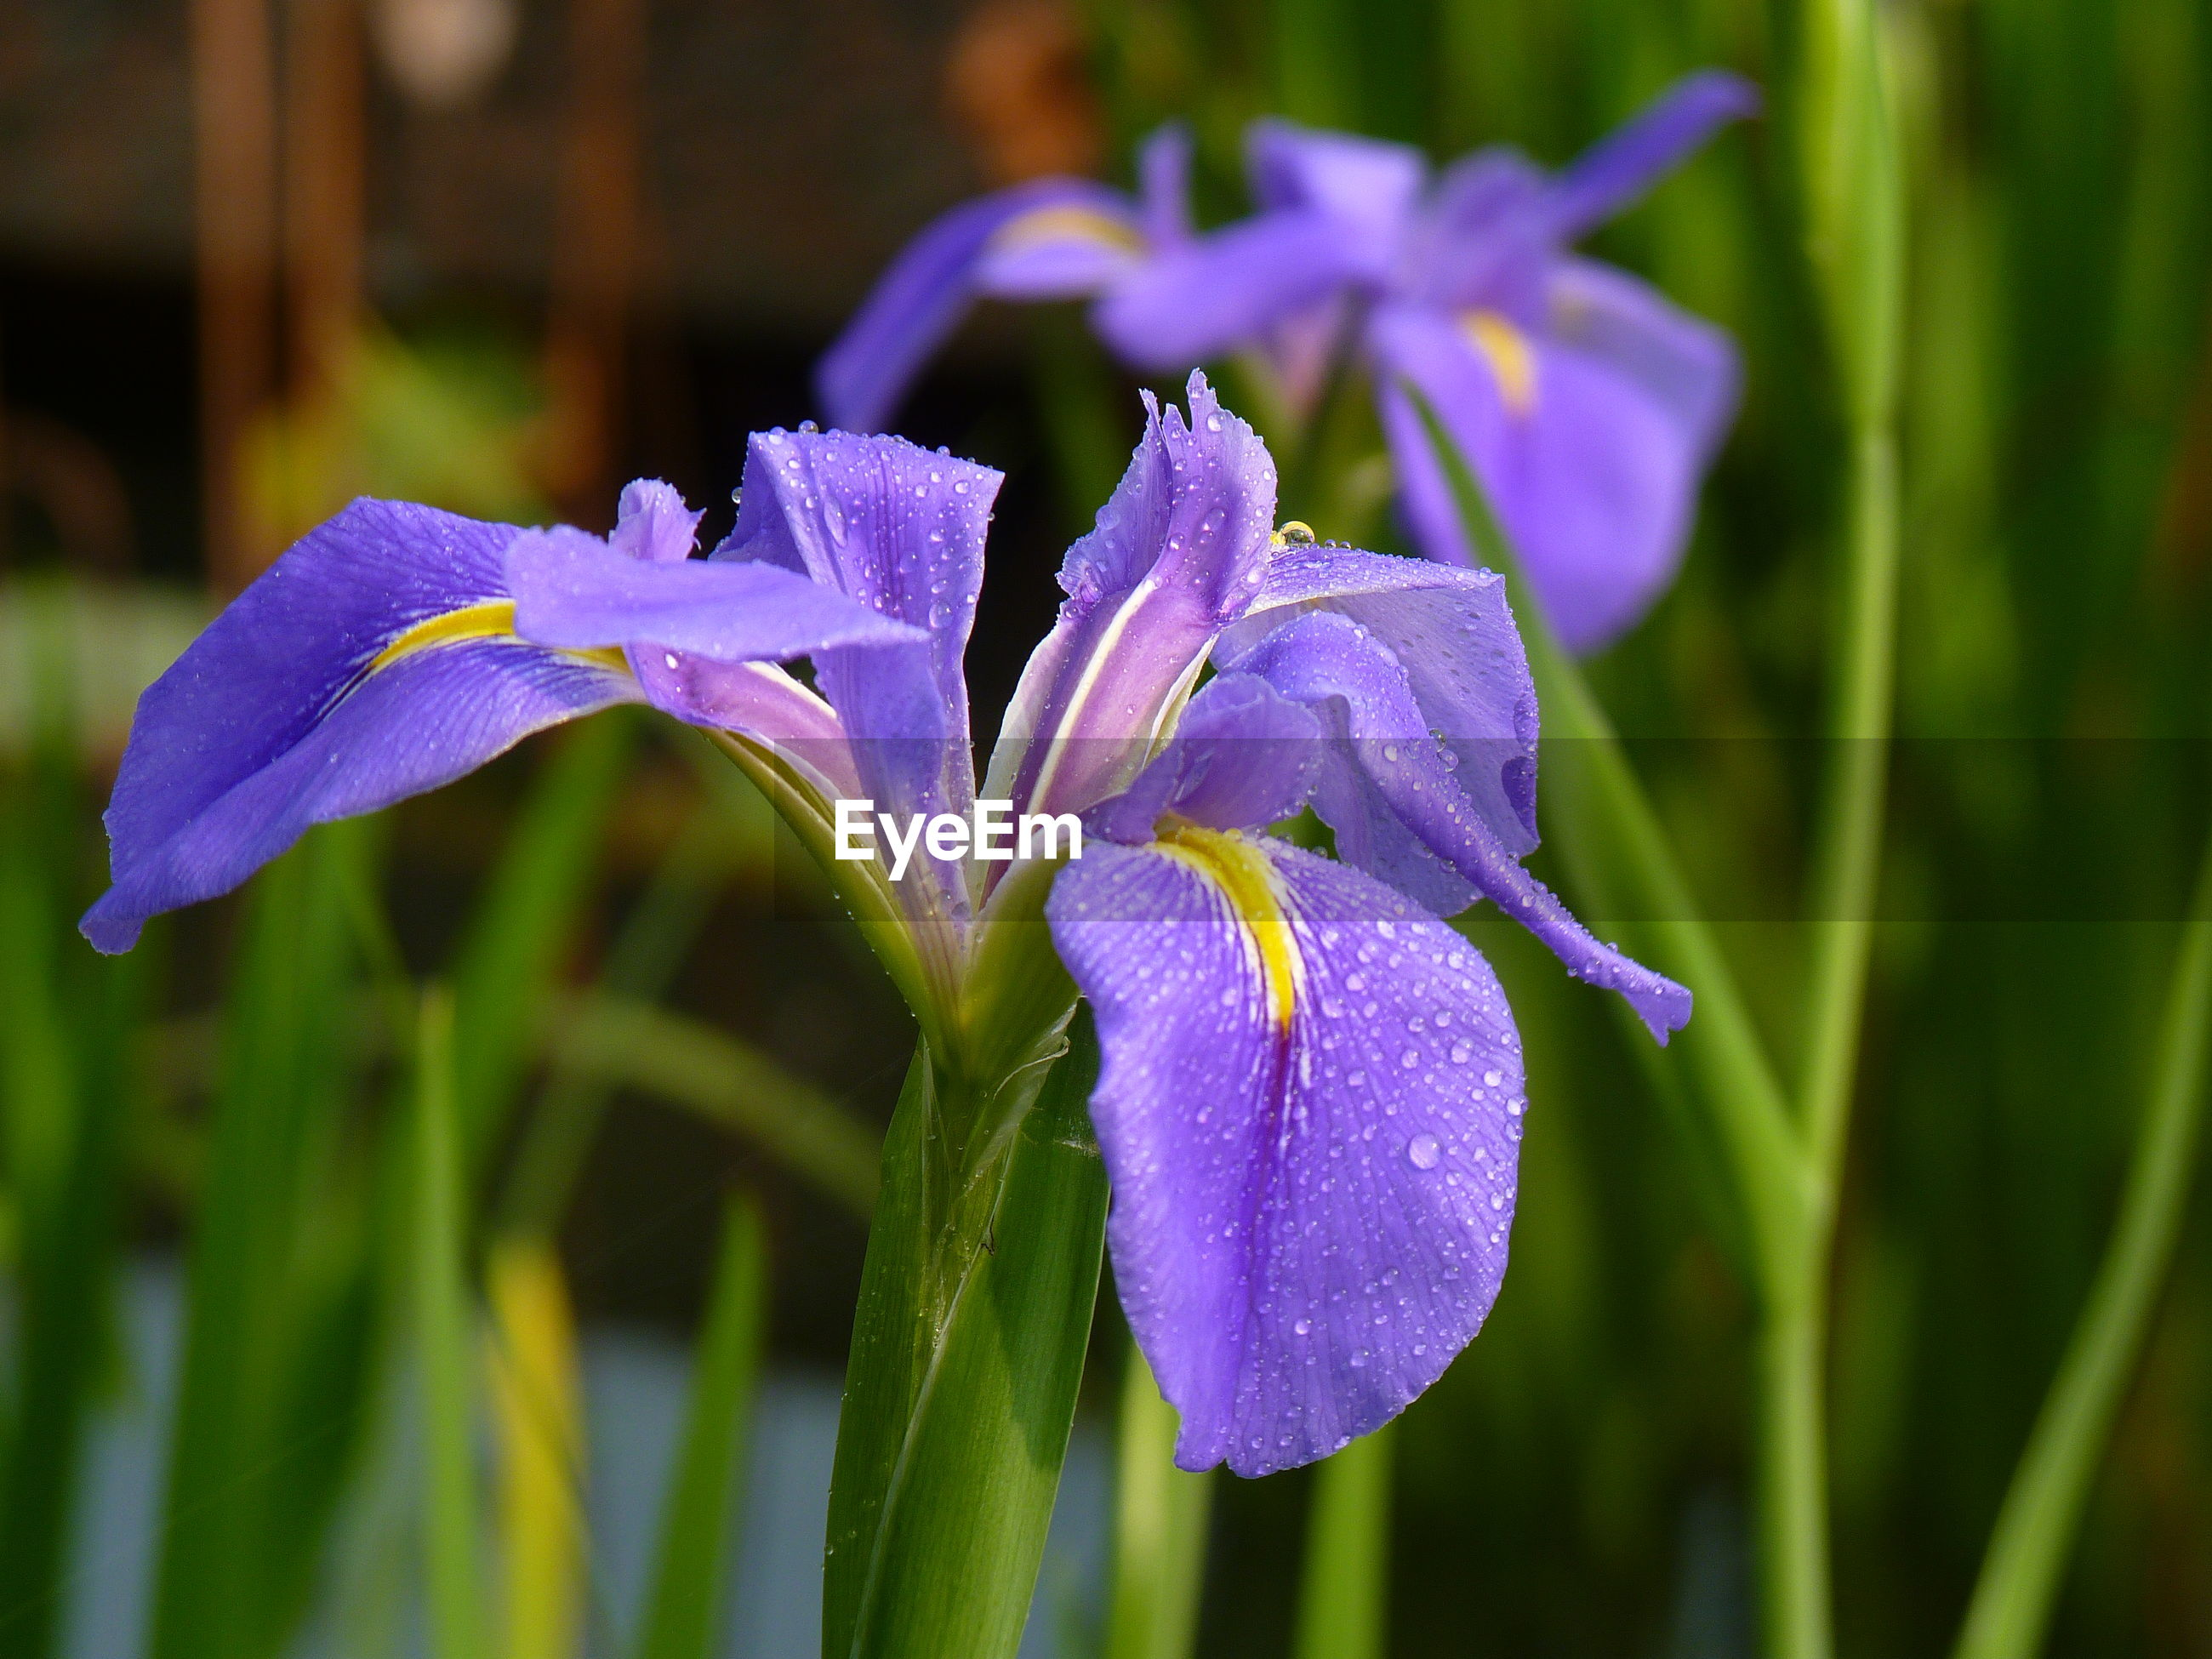 CLOSE-UP OF FRESH PURPLE IRIS BLOOMING OUTDOORS